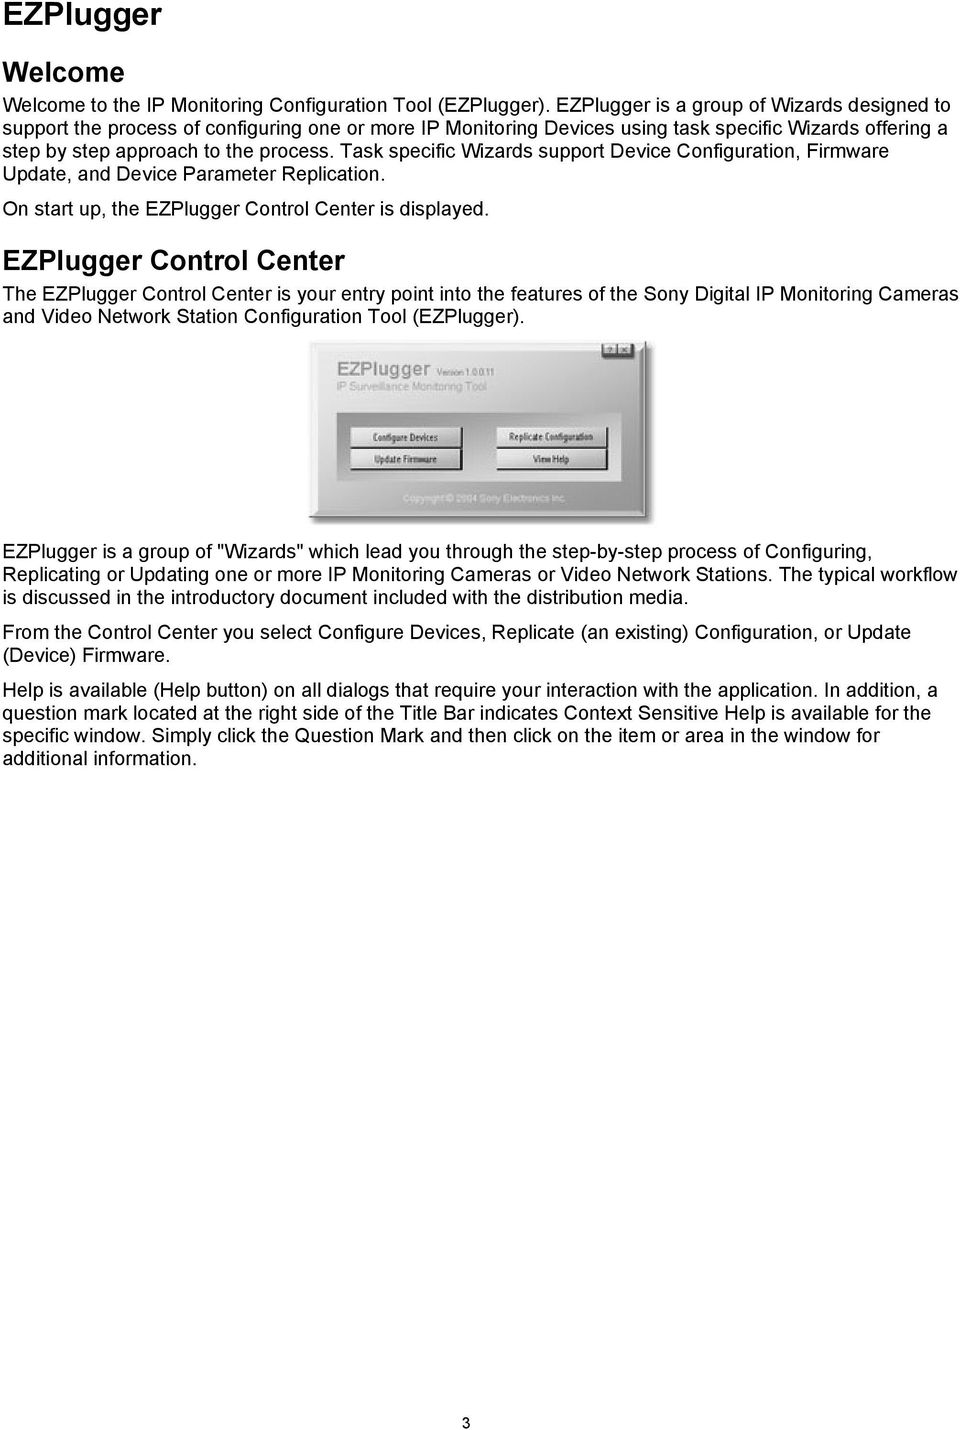 Task specific Wizards support Device Configuration, Firmware Update, and Device Parameter Replication. On start up, the EZPlugger Control Center is displayed.